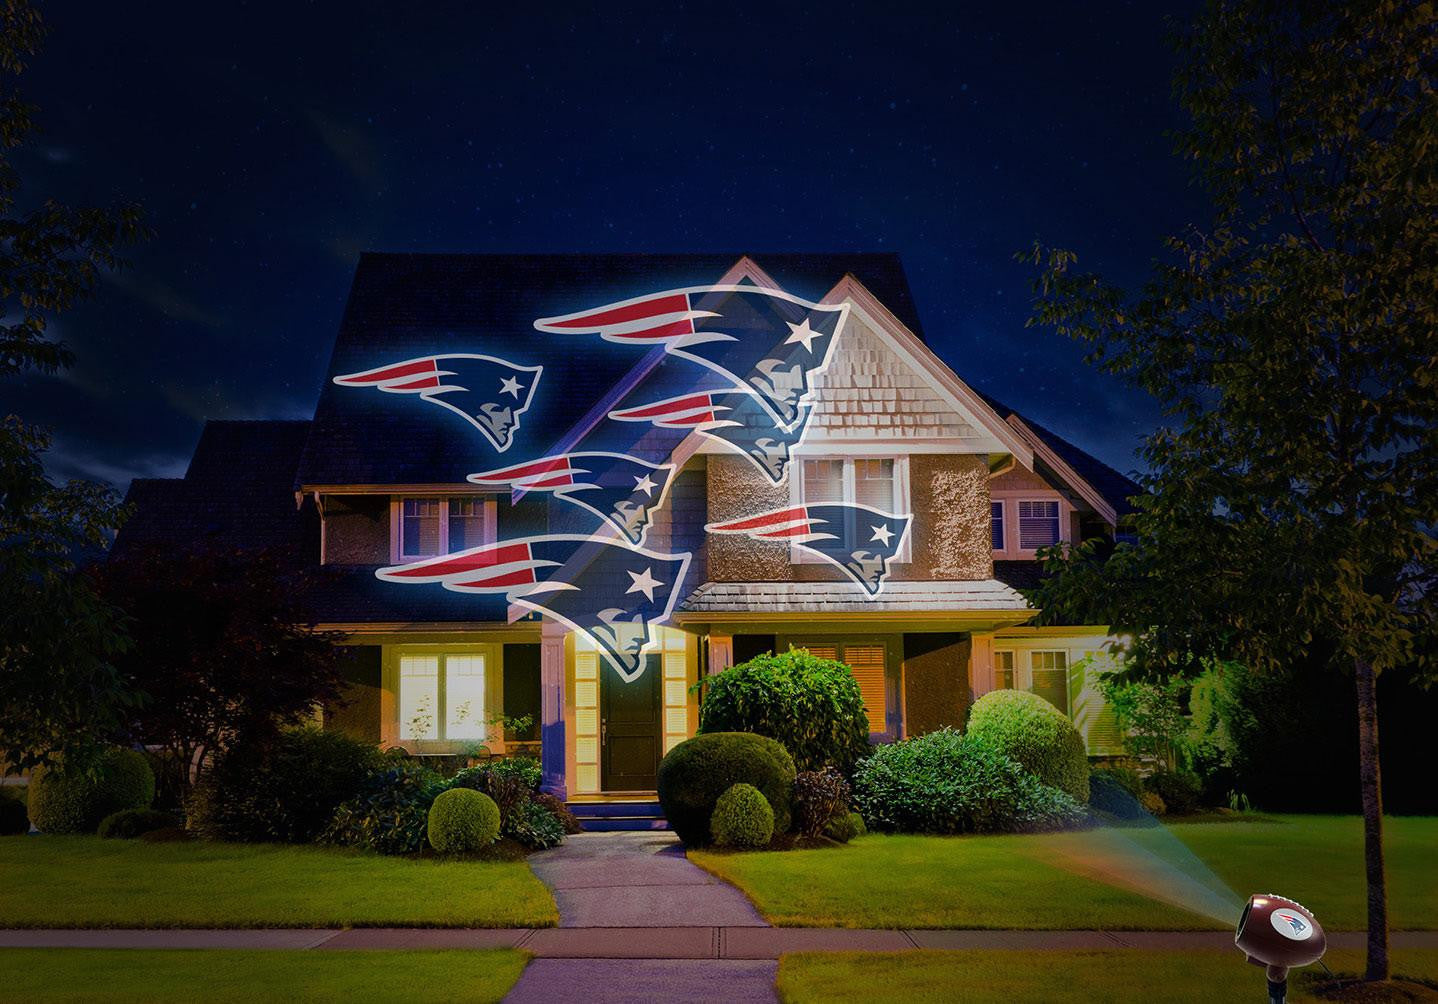 New England Patriots Team Pride Light